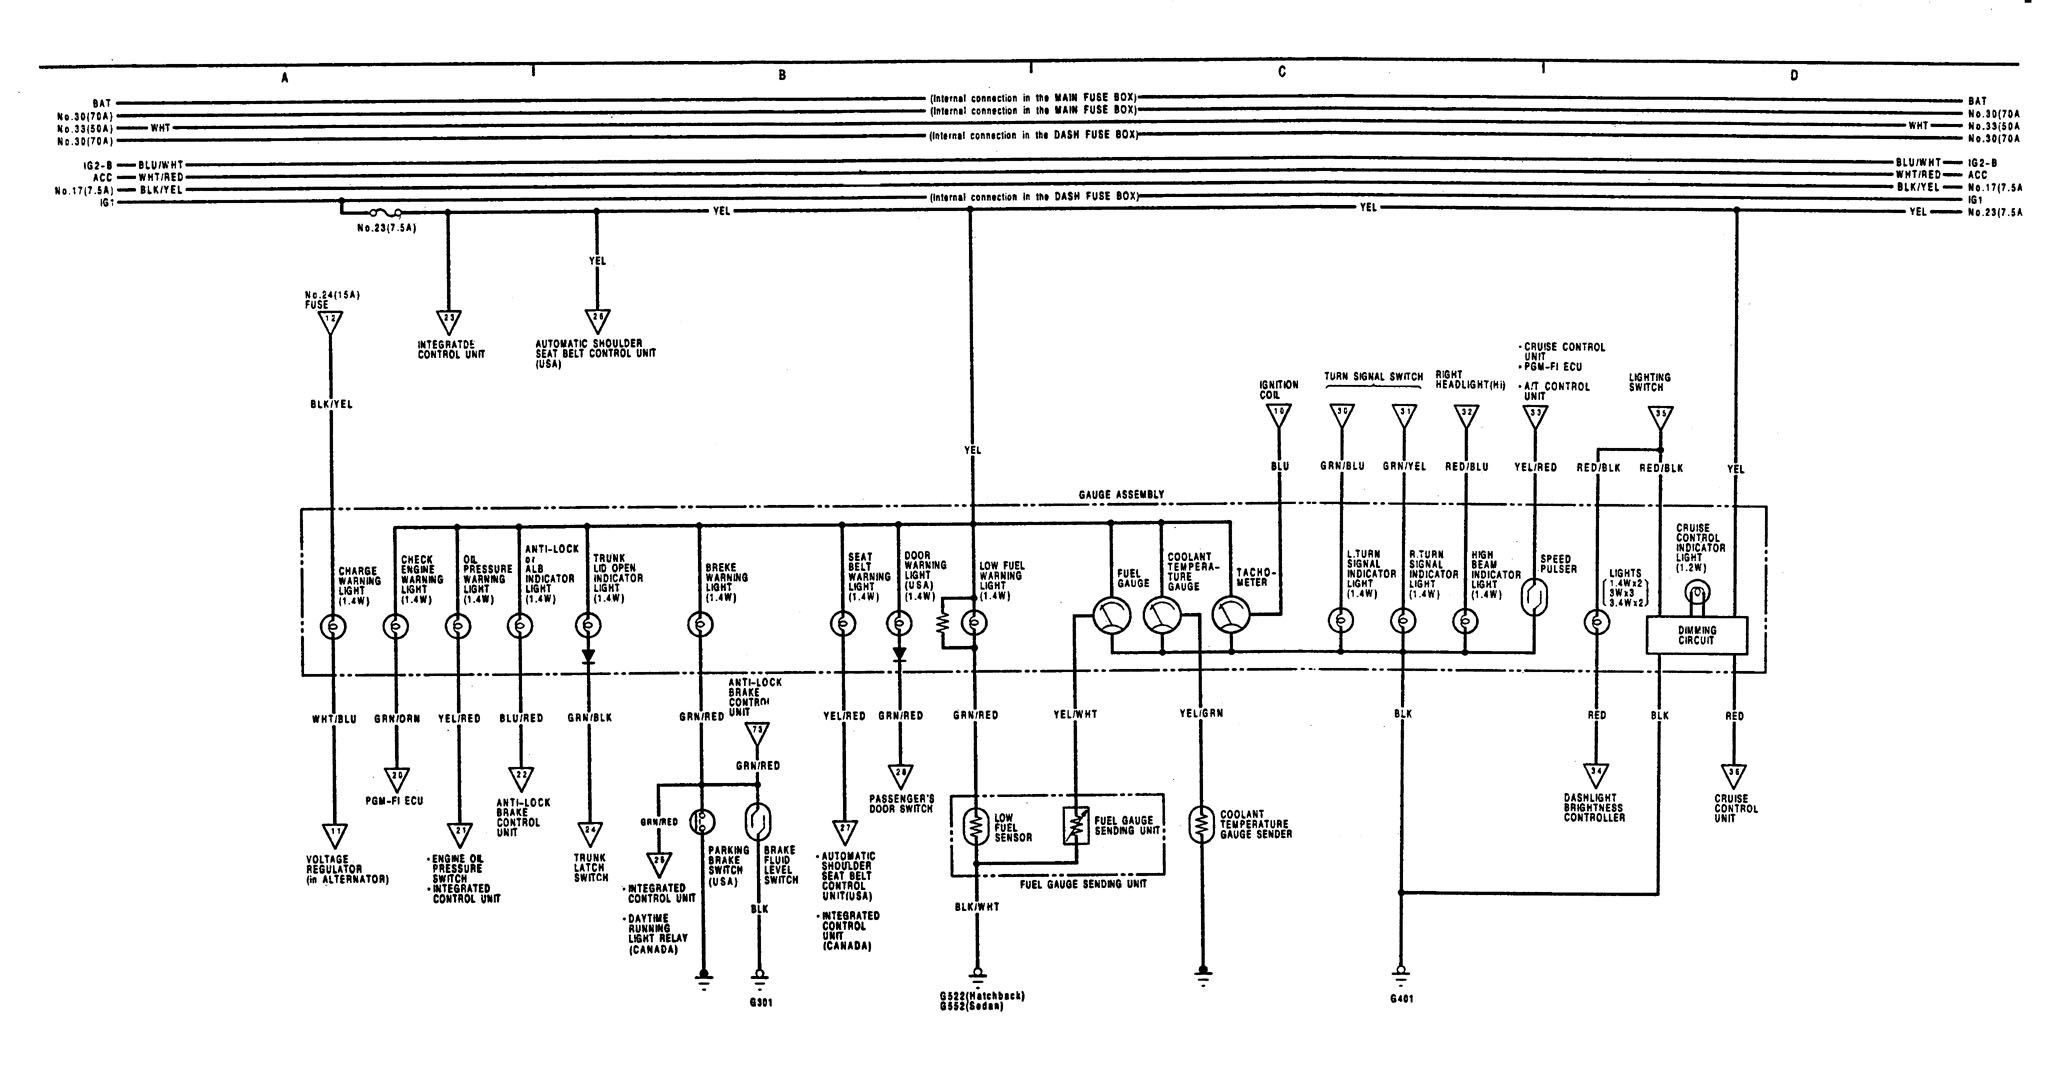 Wiring Diagram For 91 Acura Integra